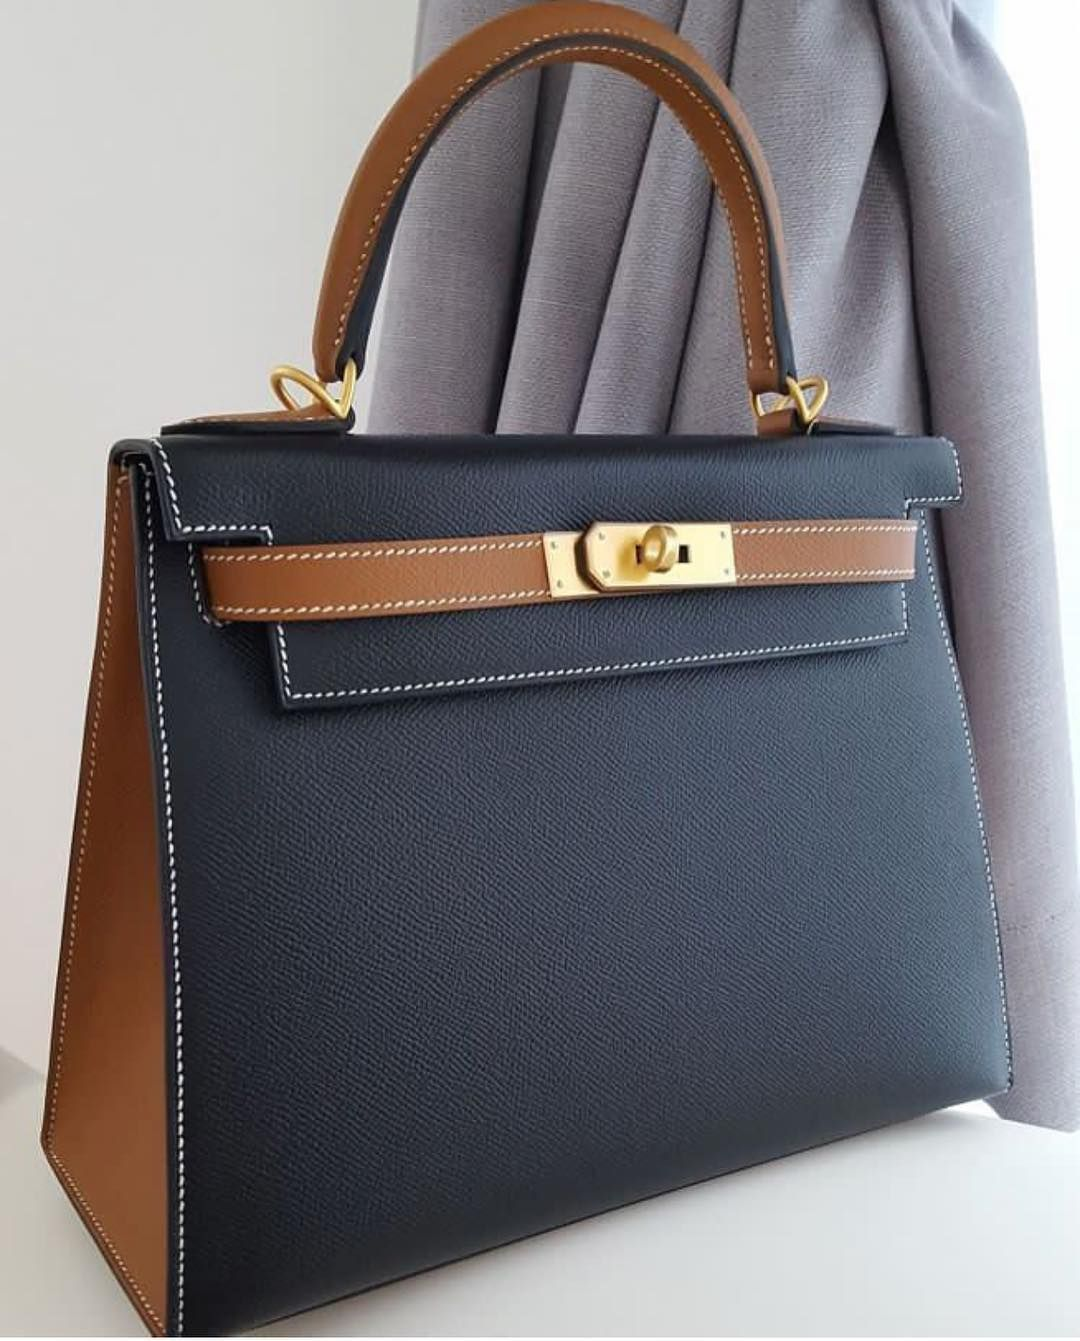 4a15ce9fa511 Hermes Kelly 28 Sellier HSS Black / Gold Epsom Ghw A | bag in 2019 ...